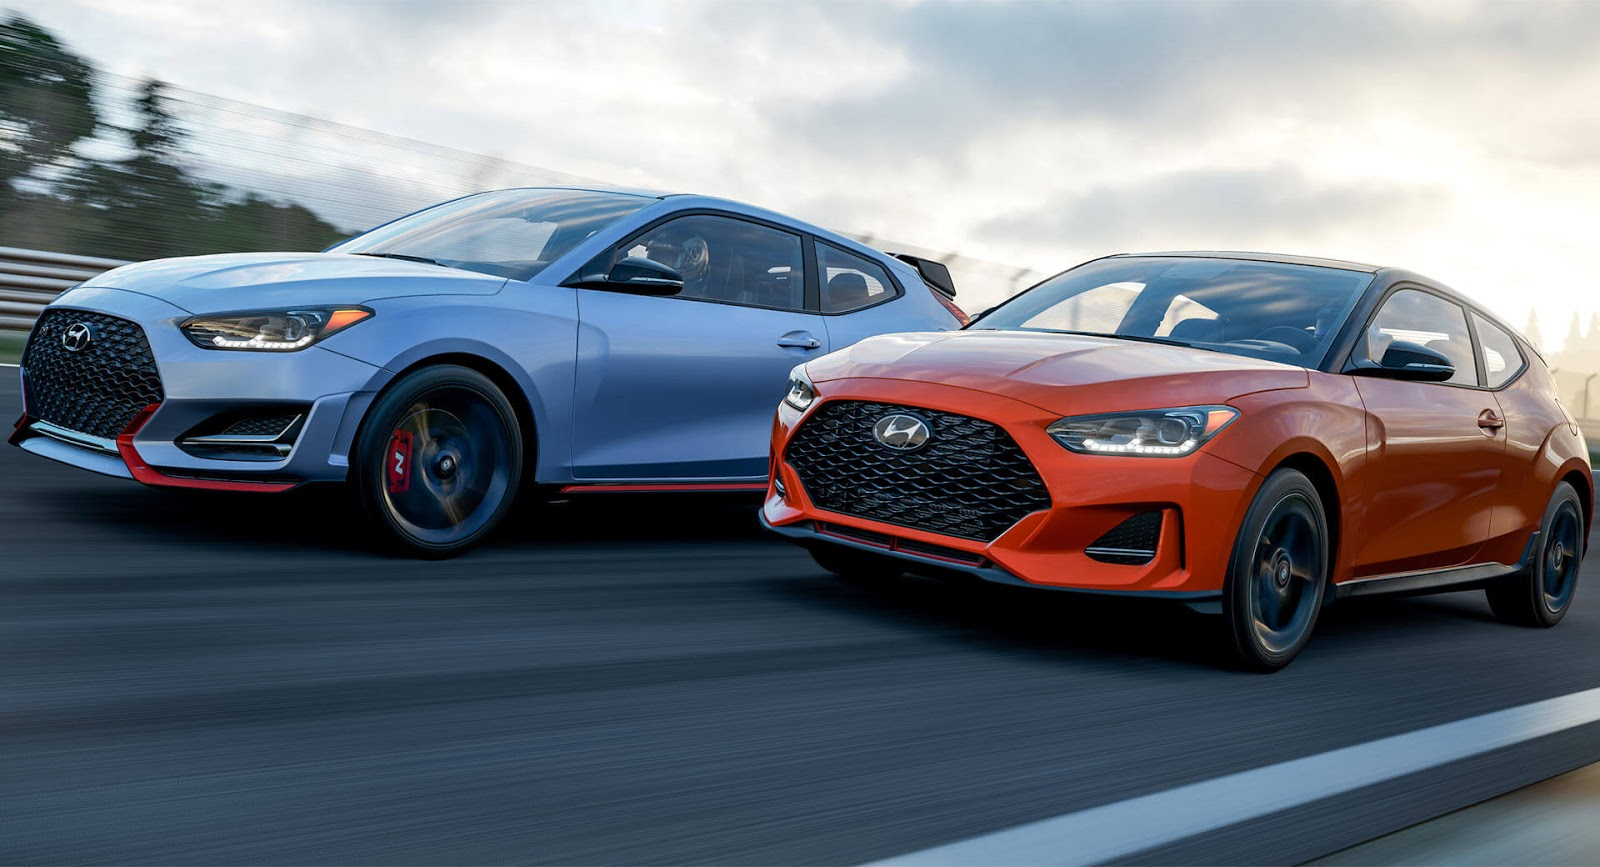 Hyundai Veloster N revealed among leaked images